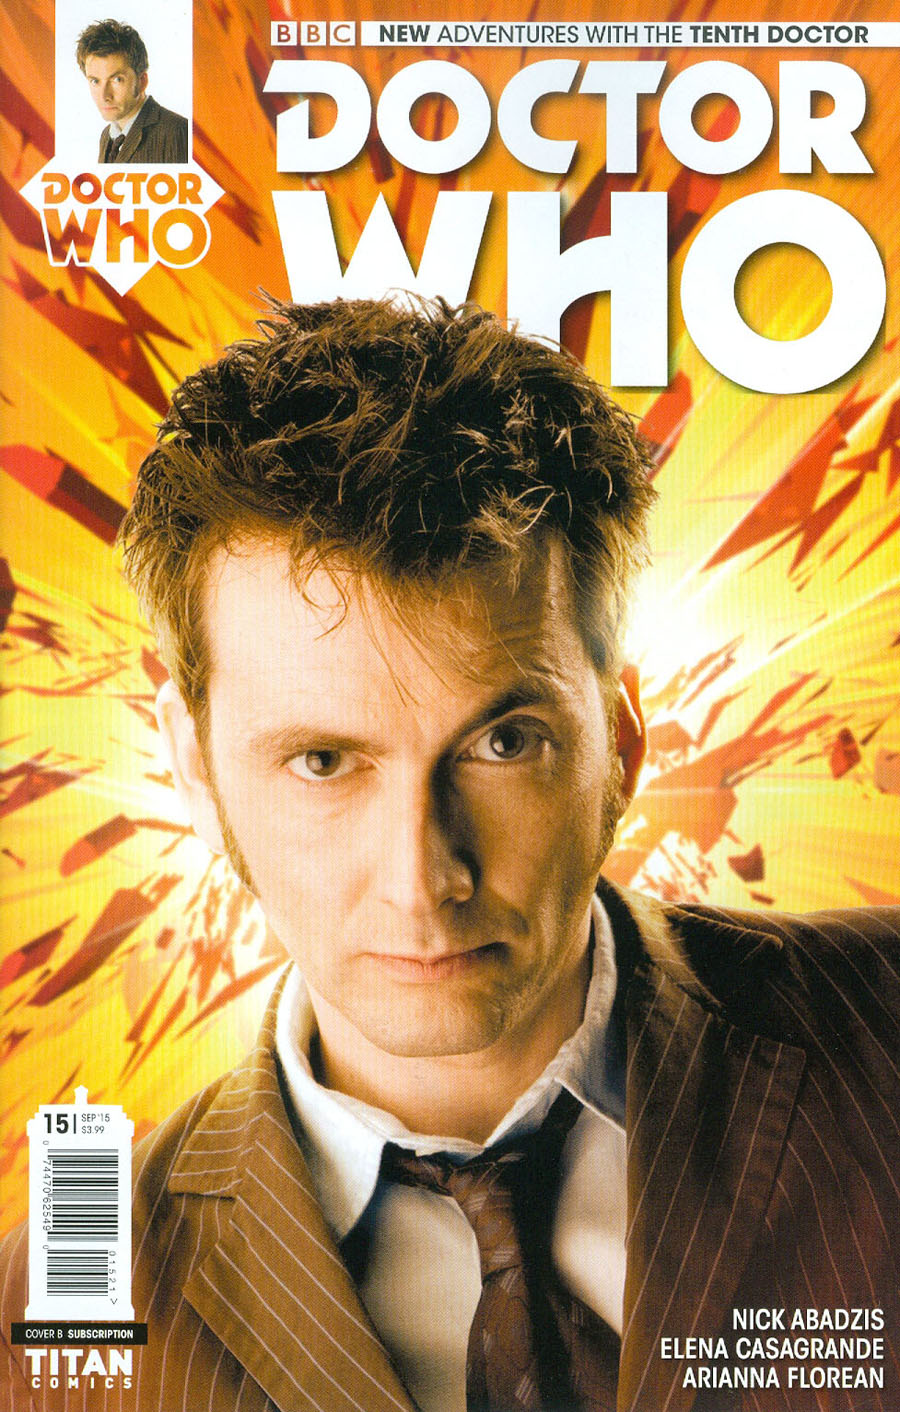 Doctor Who 10th Doctor #15 Cover B Variant Photo Subscription Cover